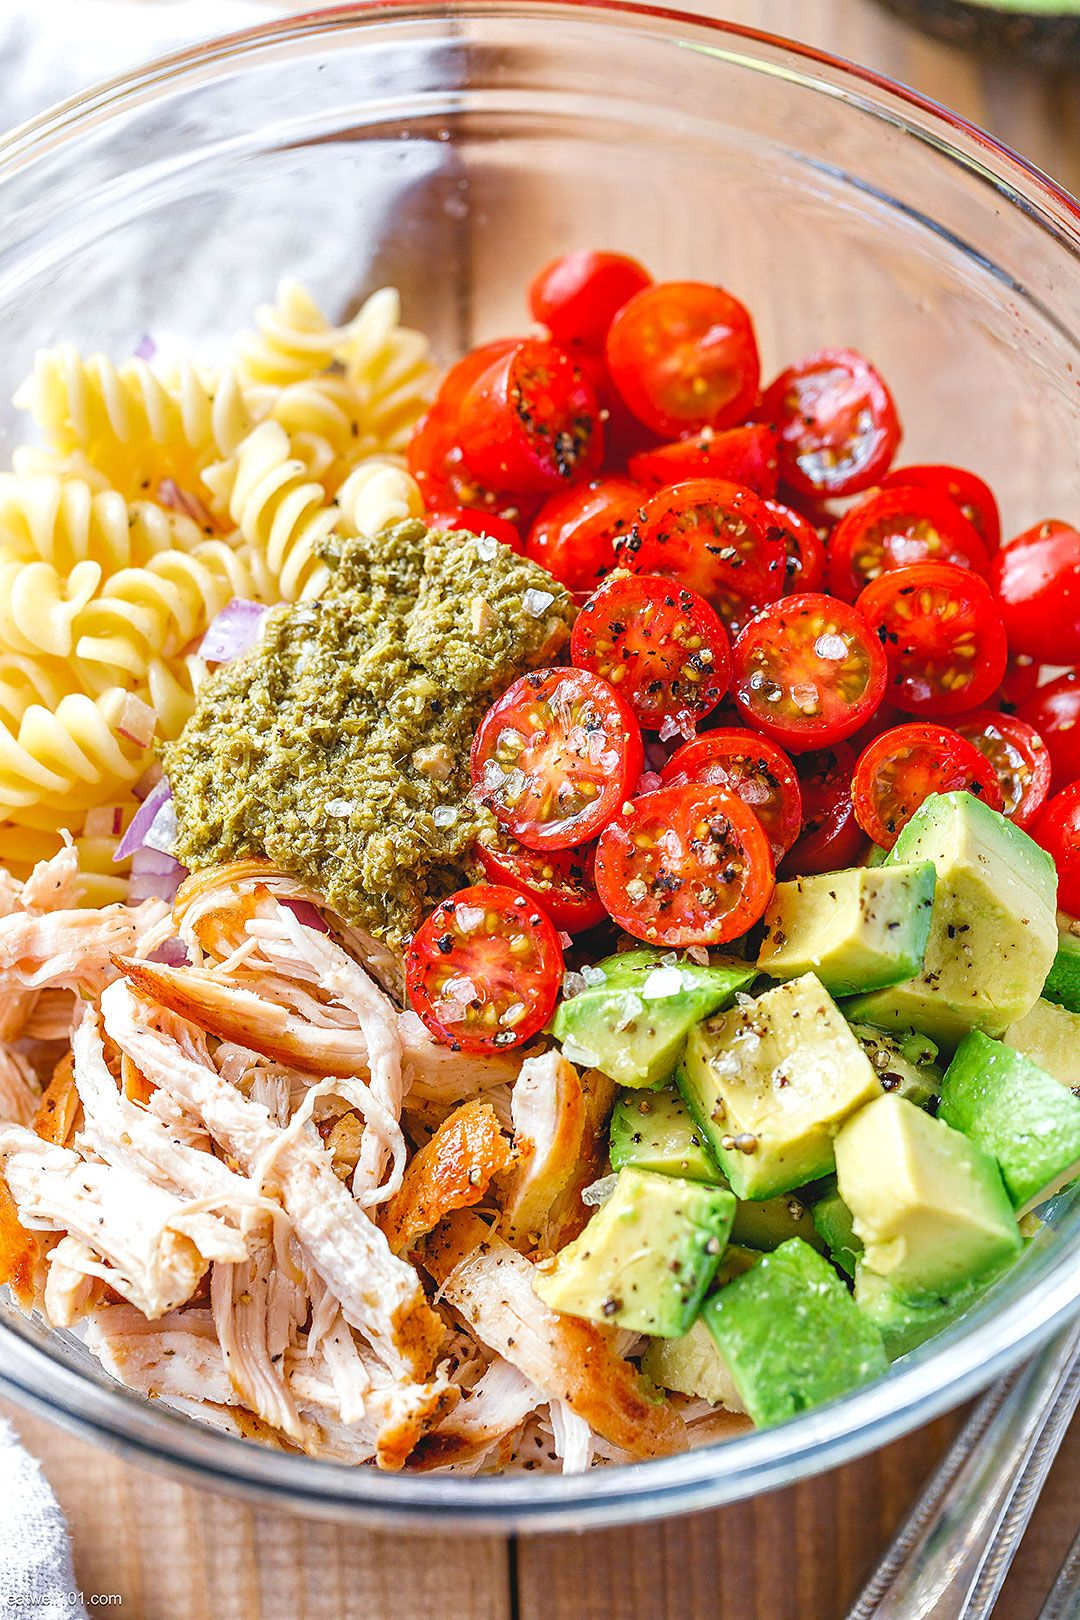 Healthy Chicken Pasta Salad with Pesto, Avocado, and Tomato